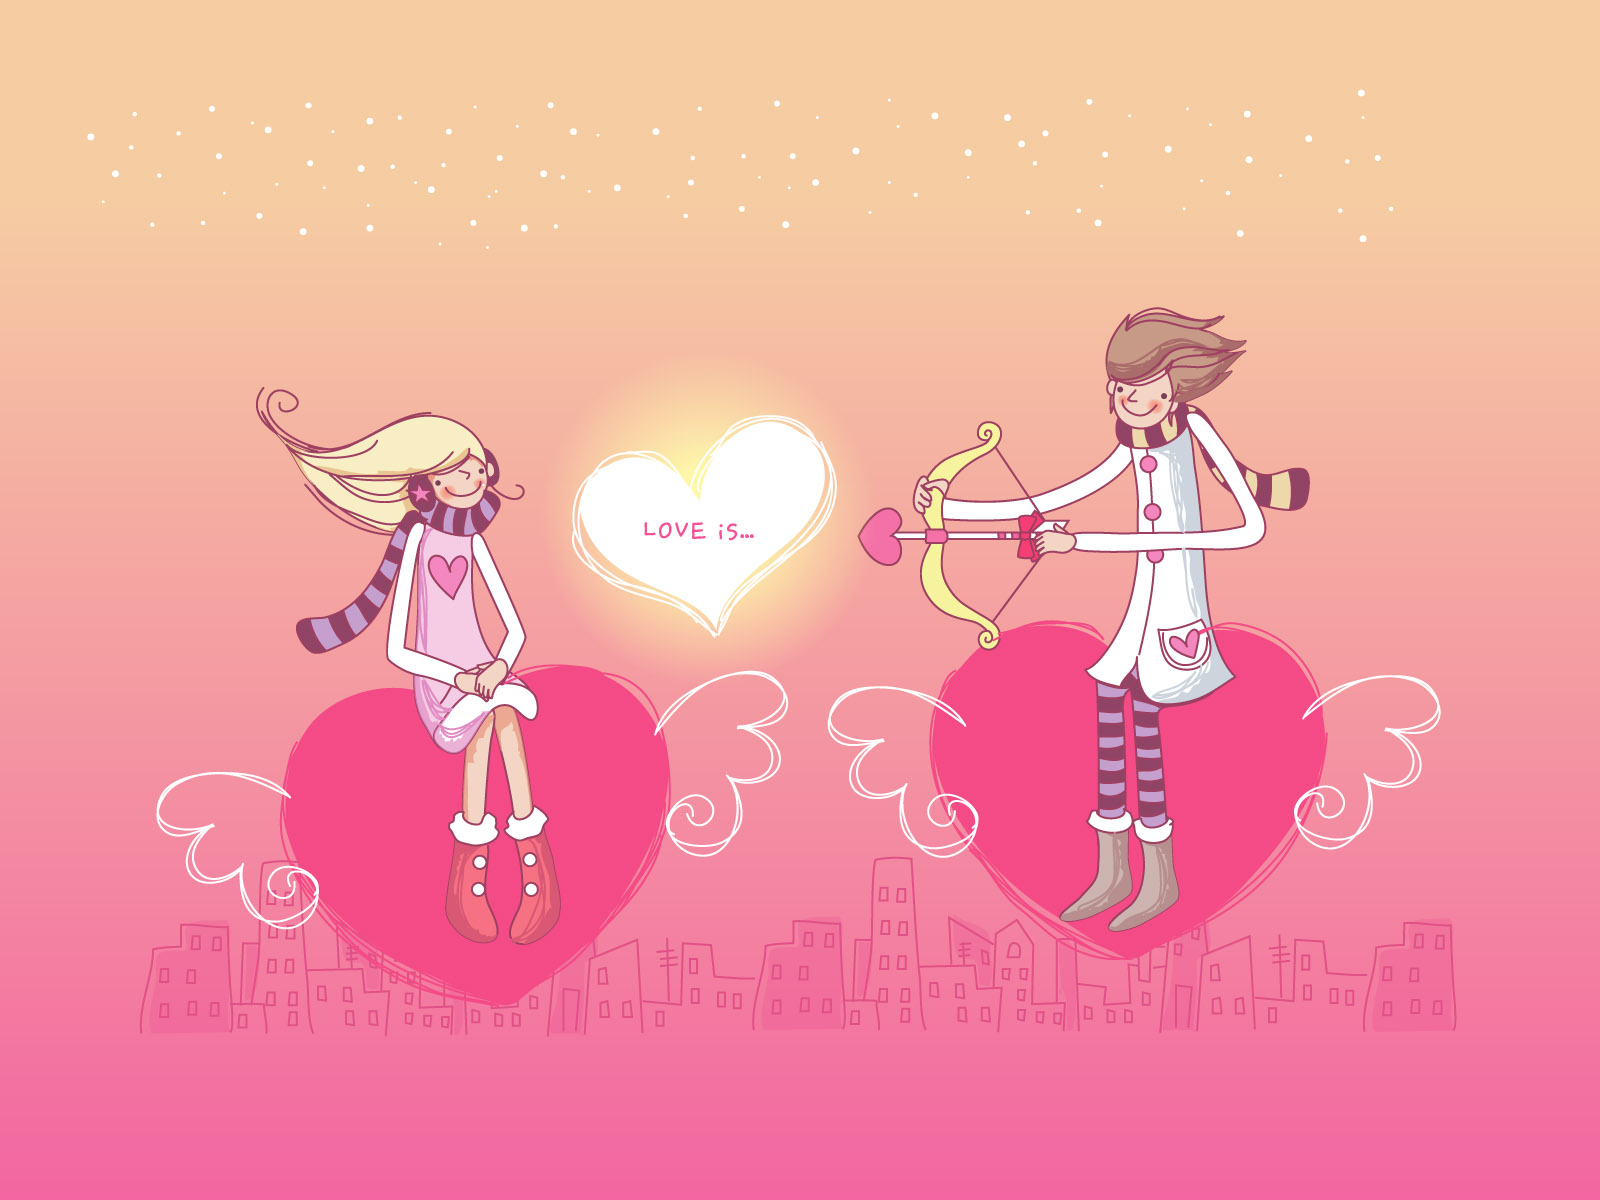 Wallpaper Fall In Love cartoon : 1600x1200 Falling in Love desktop Pc and Mac wallpaper